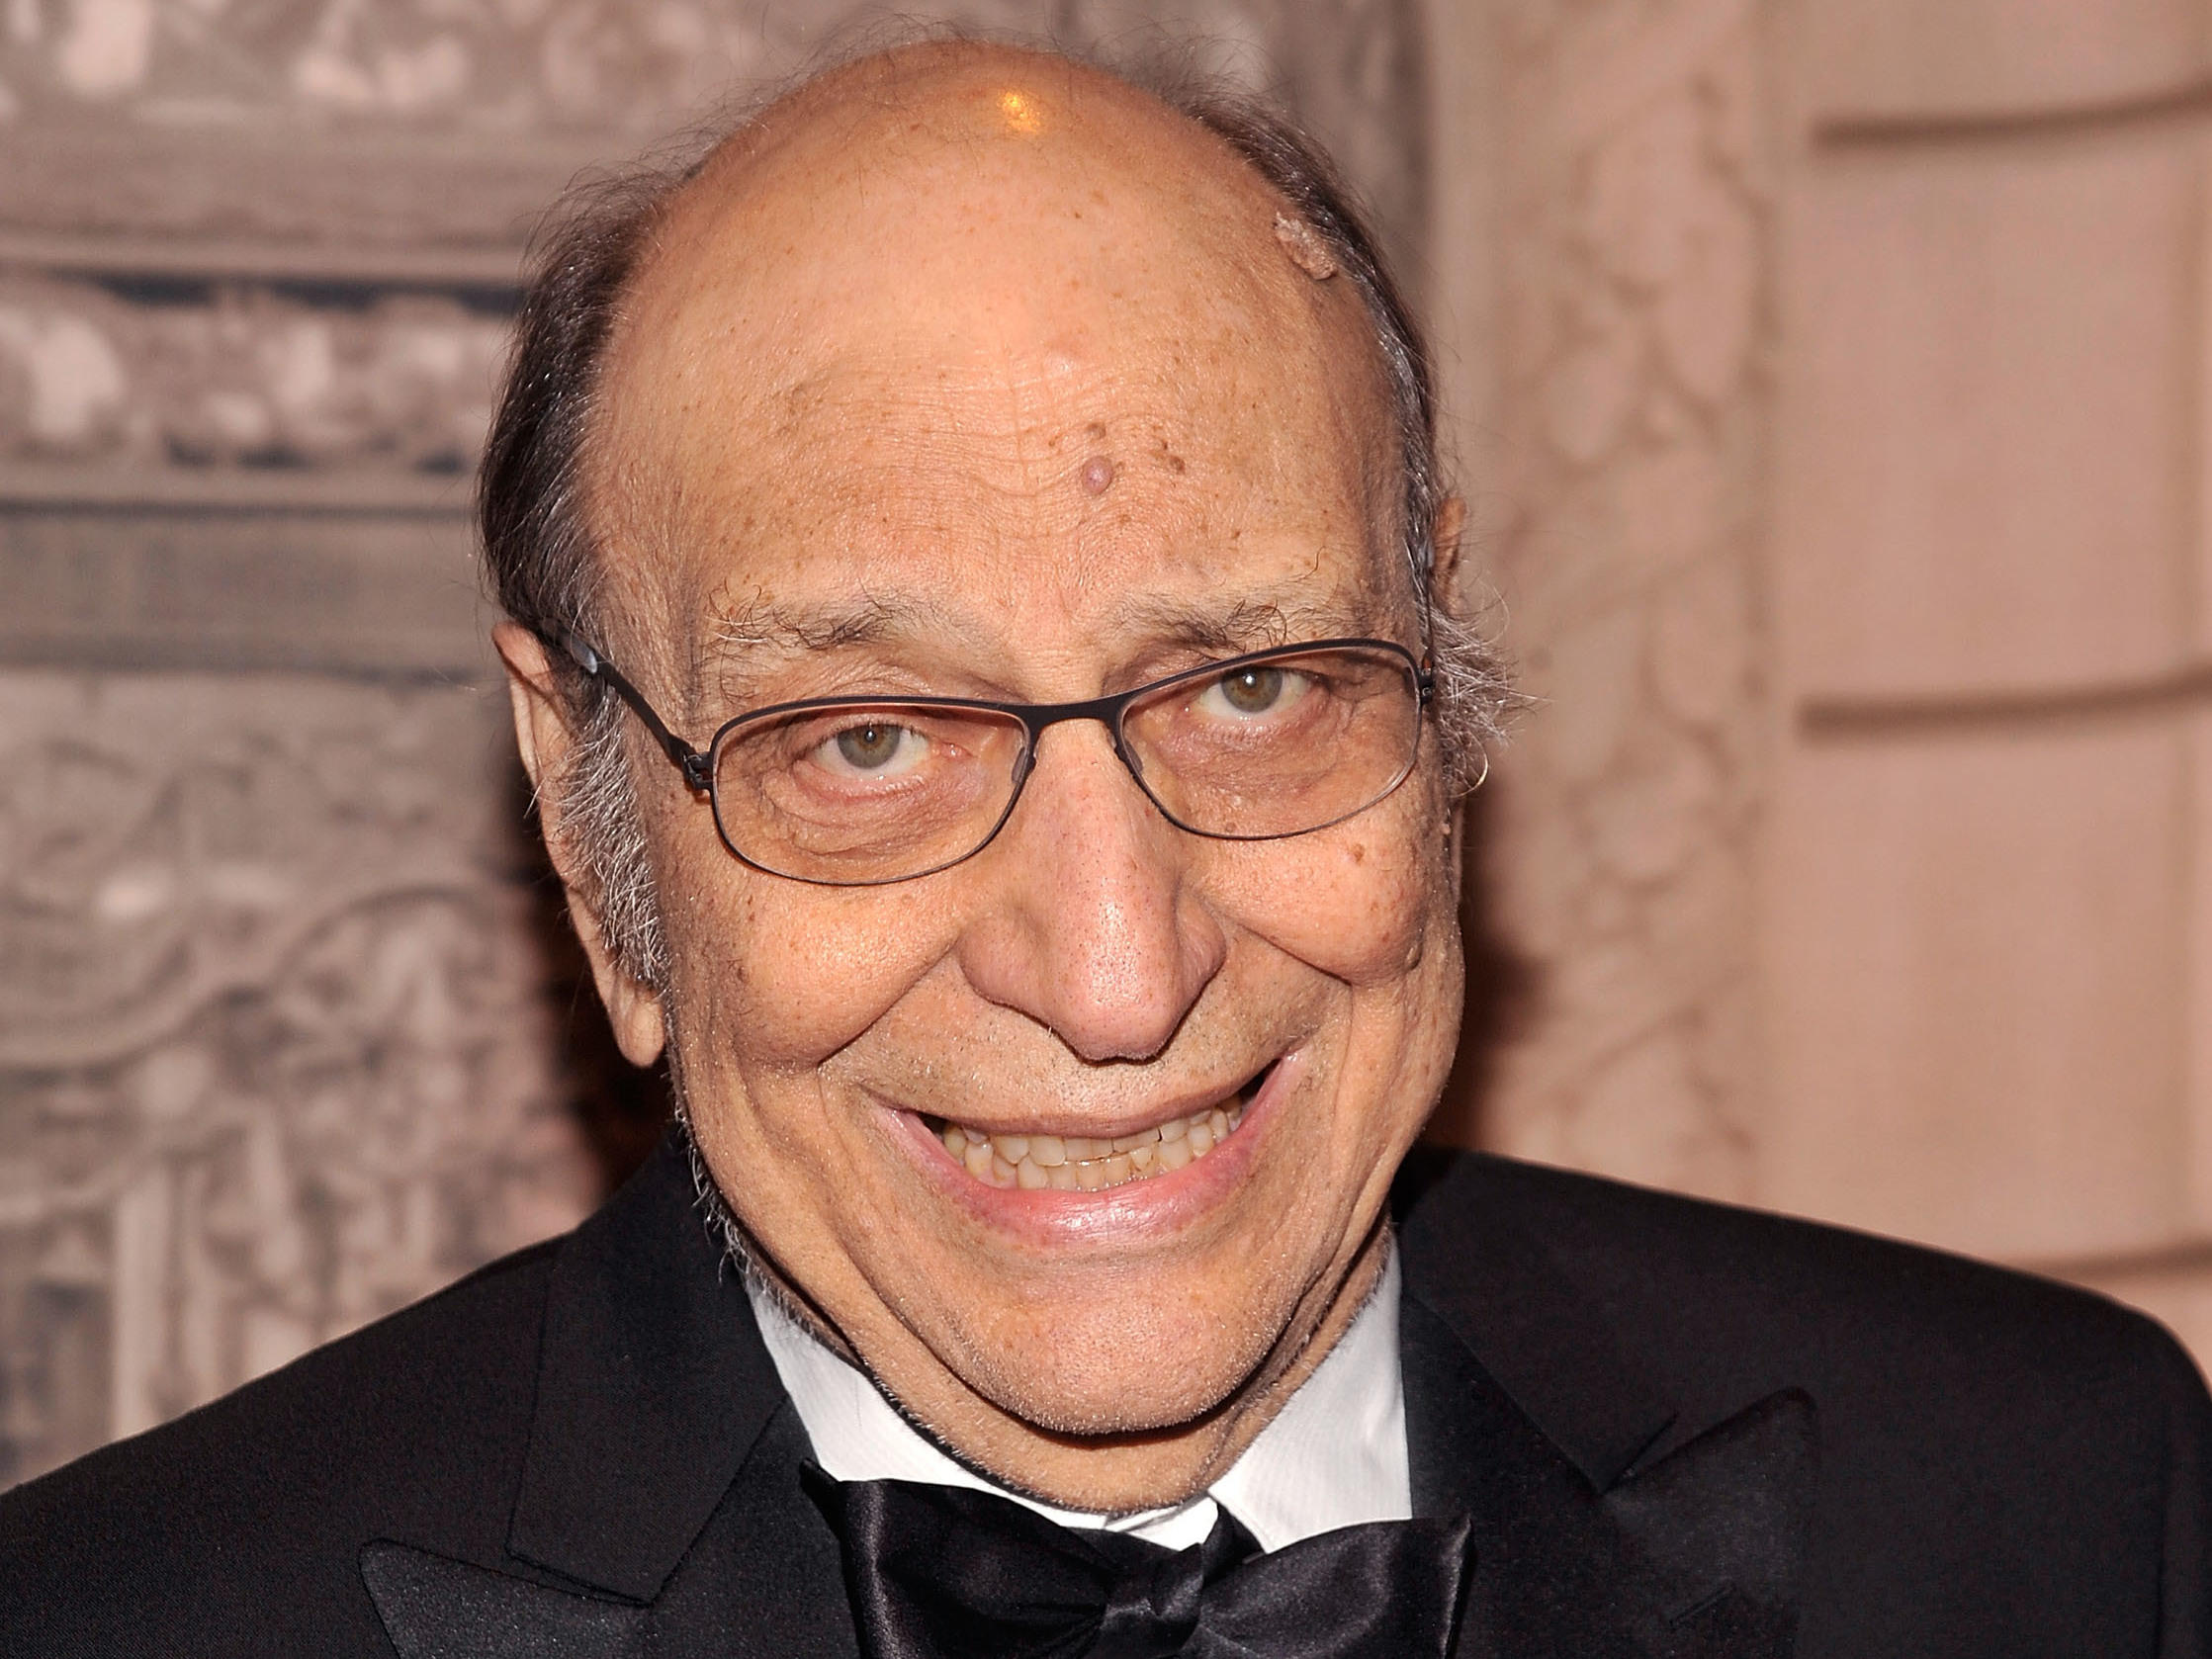 Famous Artist Milton Glaser died on his 91st birthday